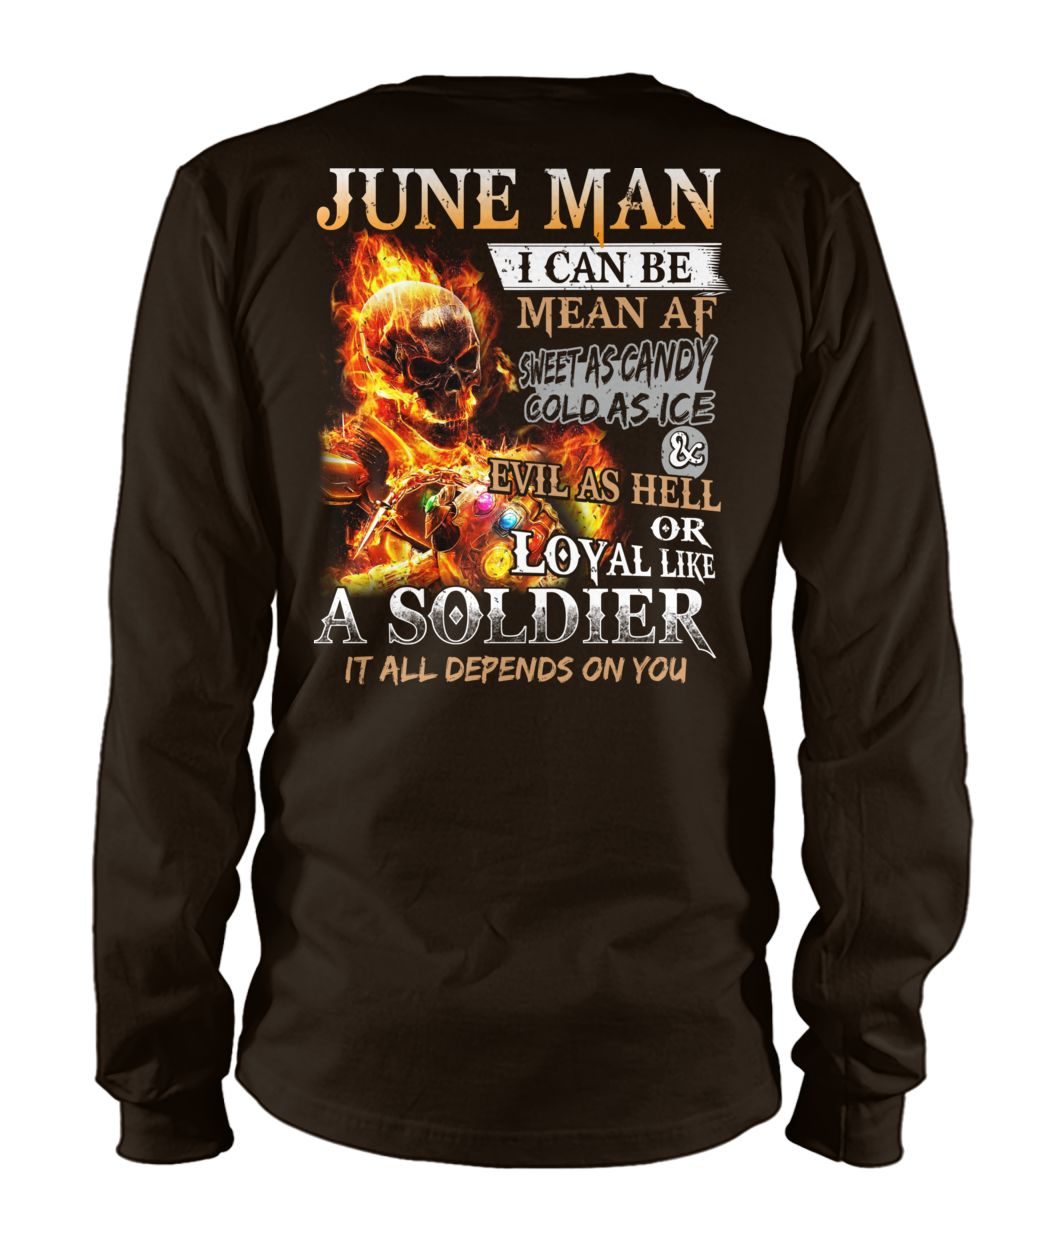 June man I can be mean af sweet as candy gold as ice and evil as hell unisex long sleeve